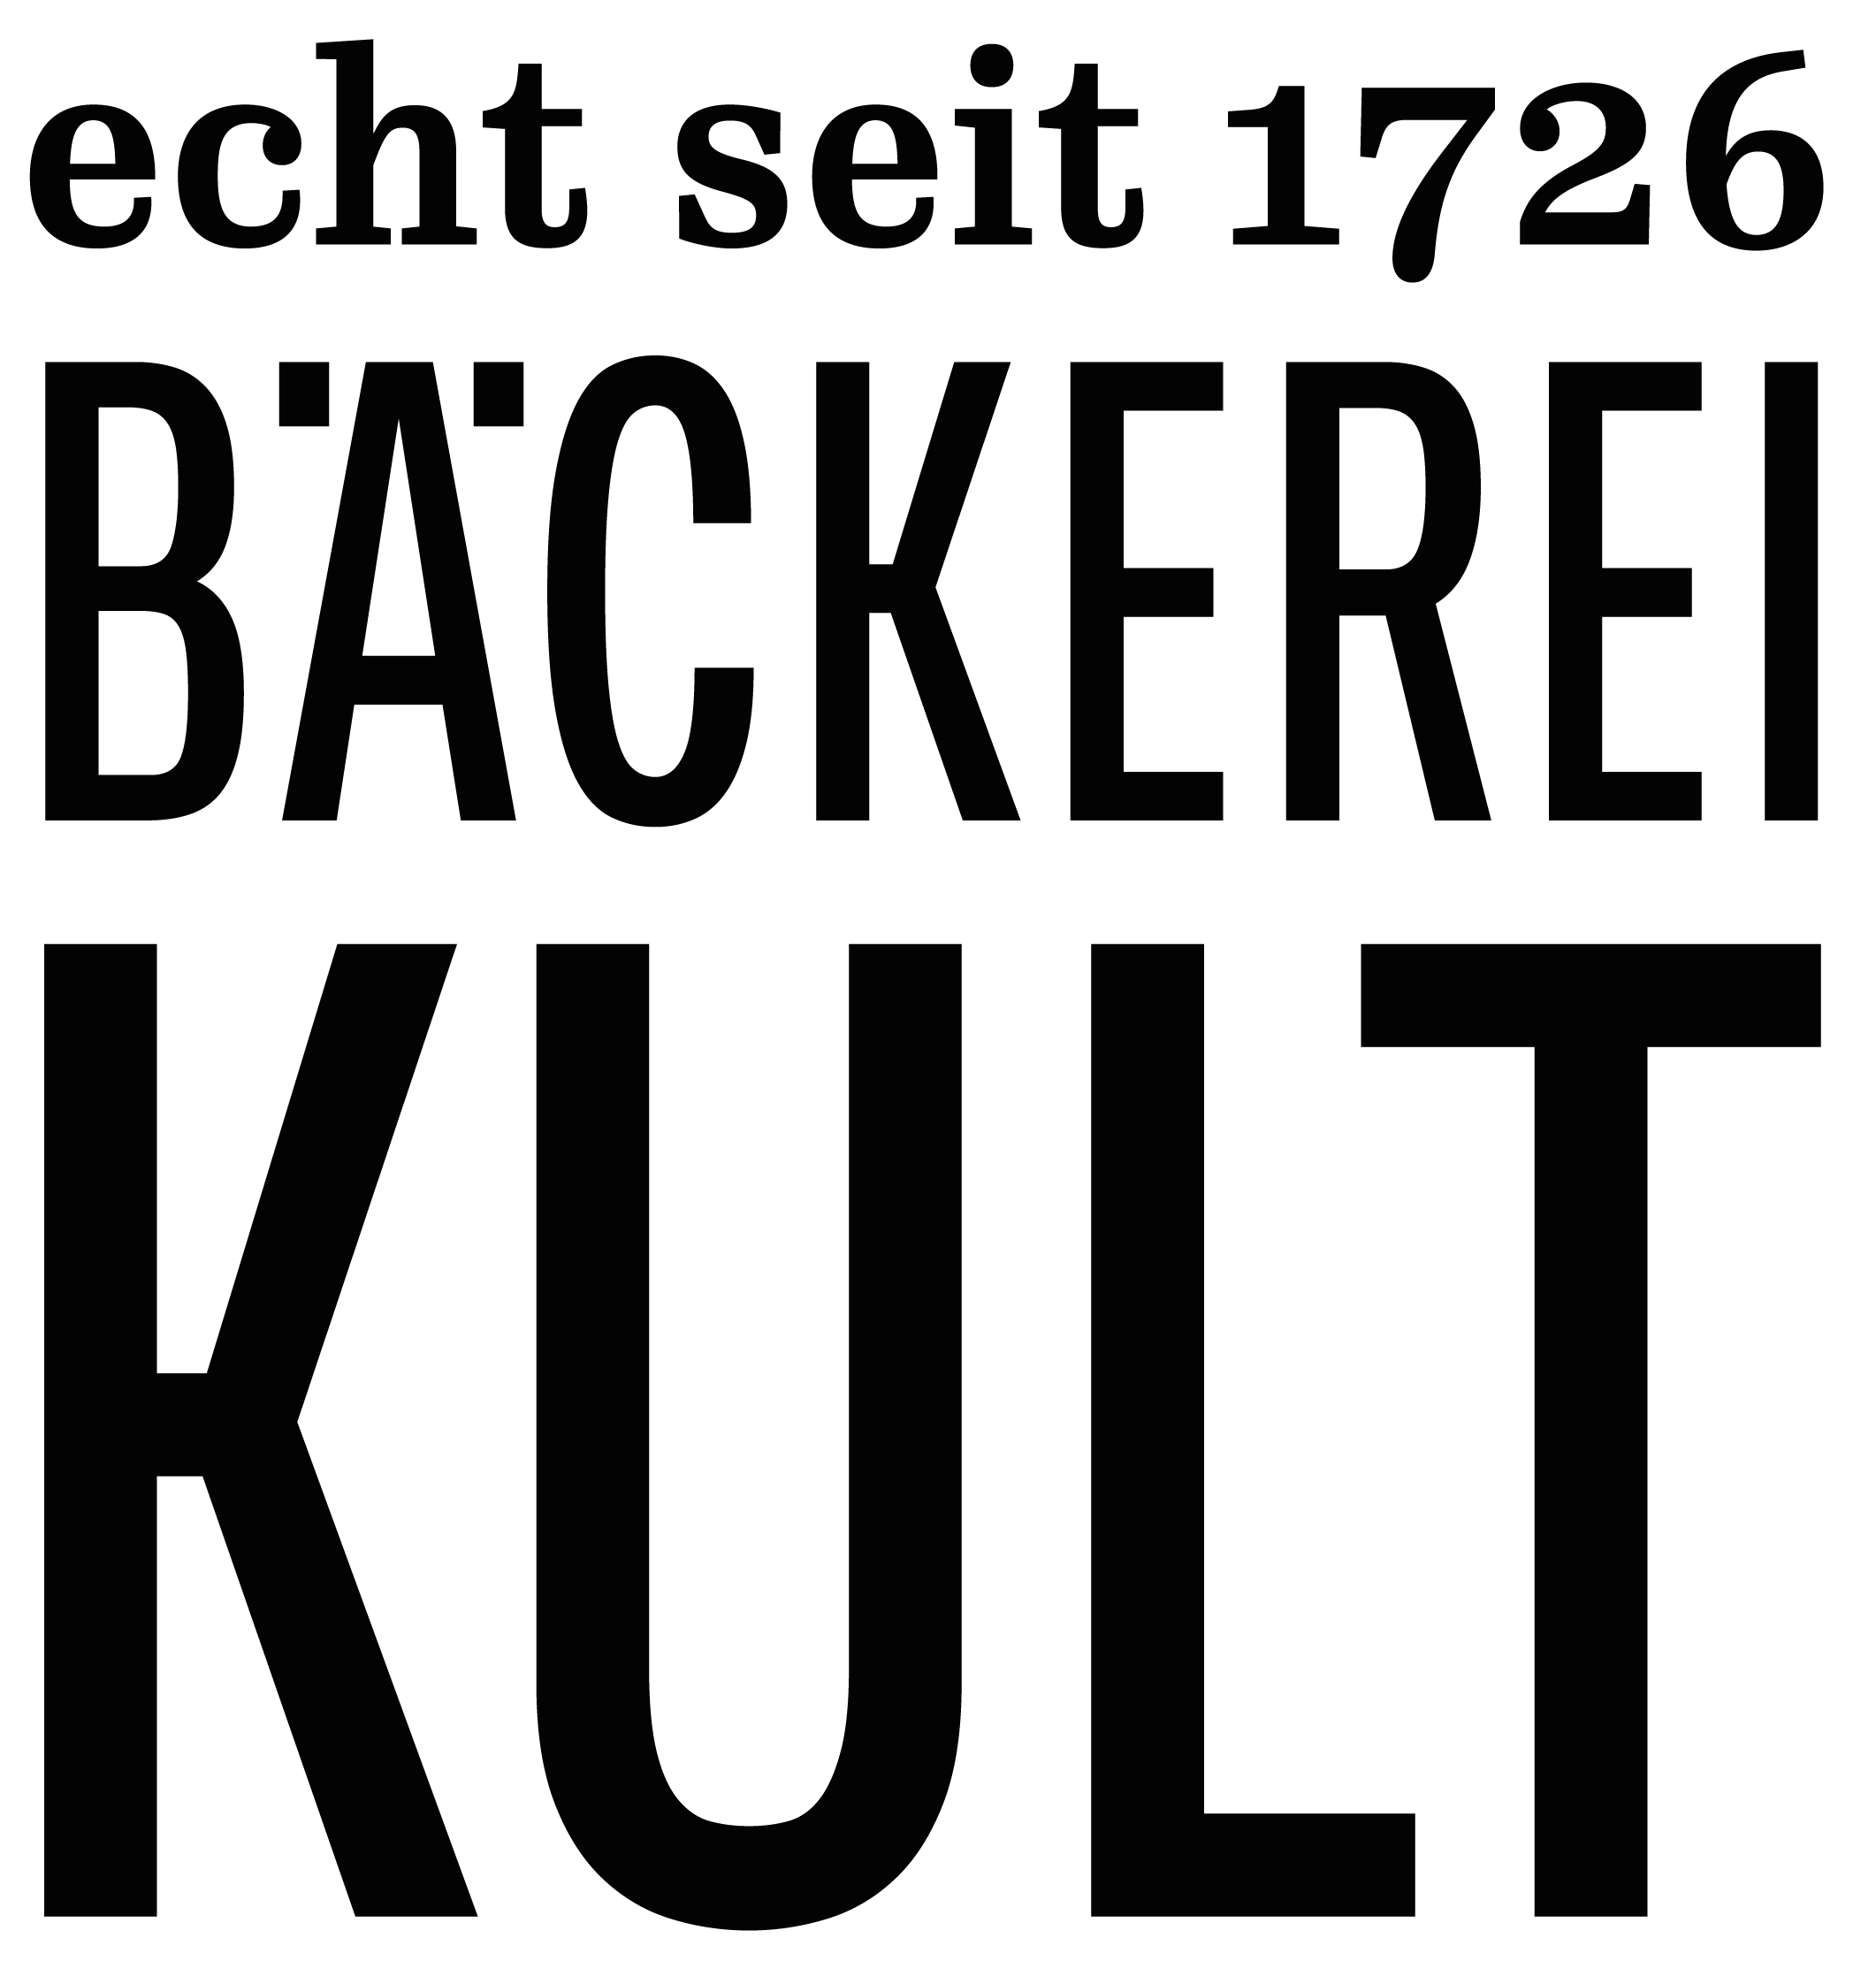 Bäckerei KULT Delivery